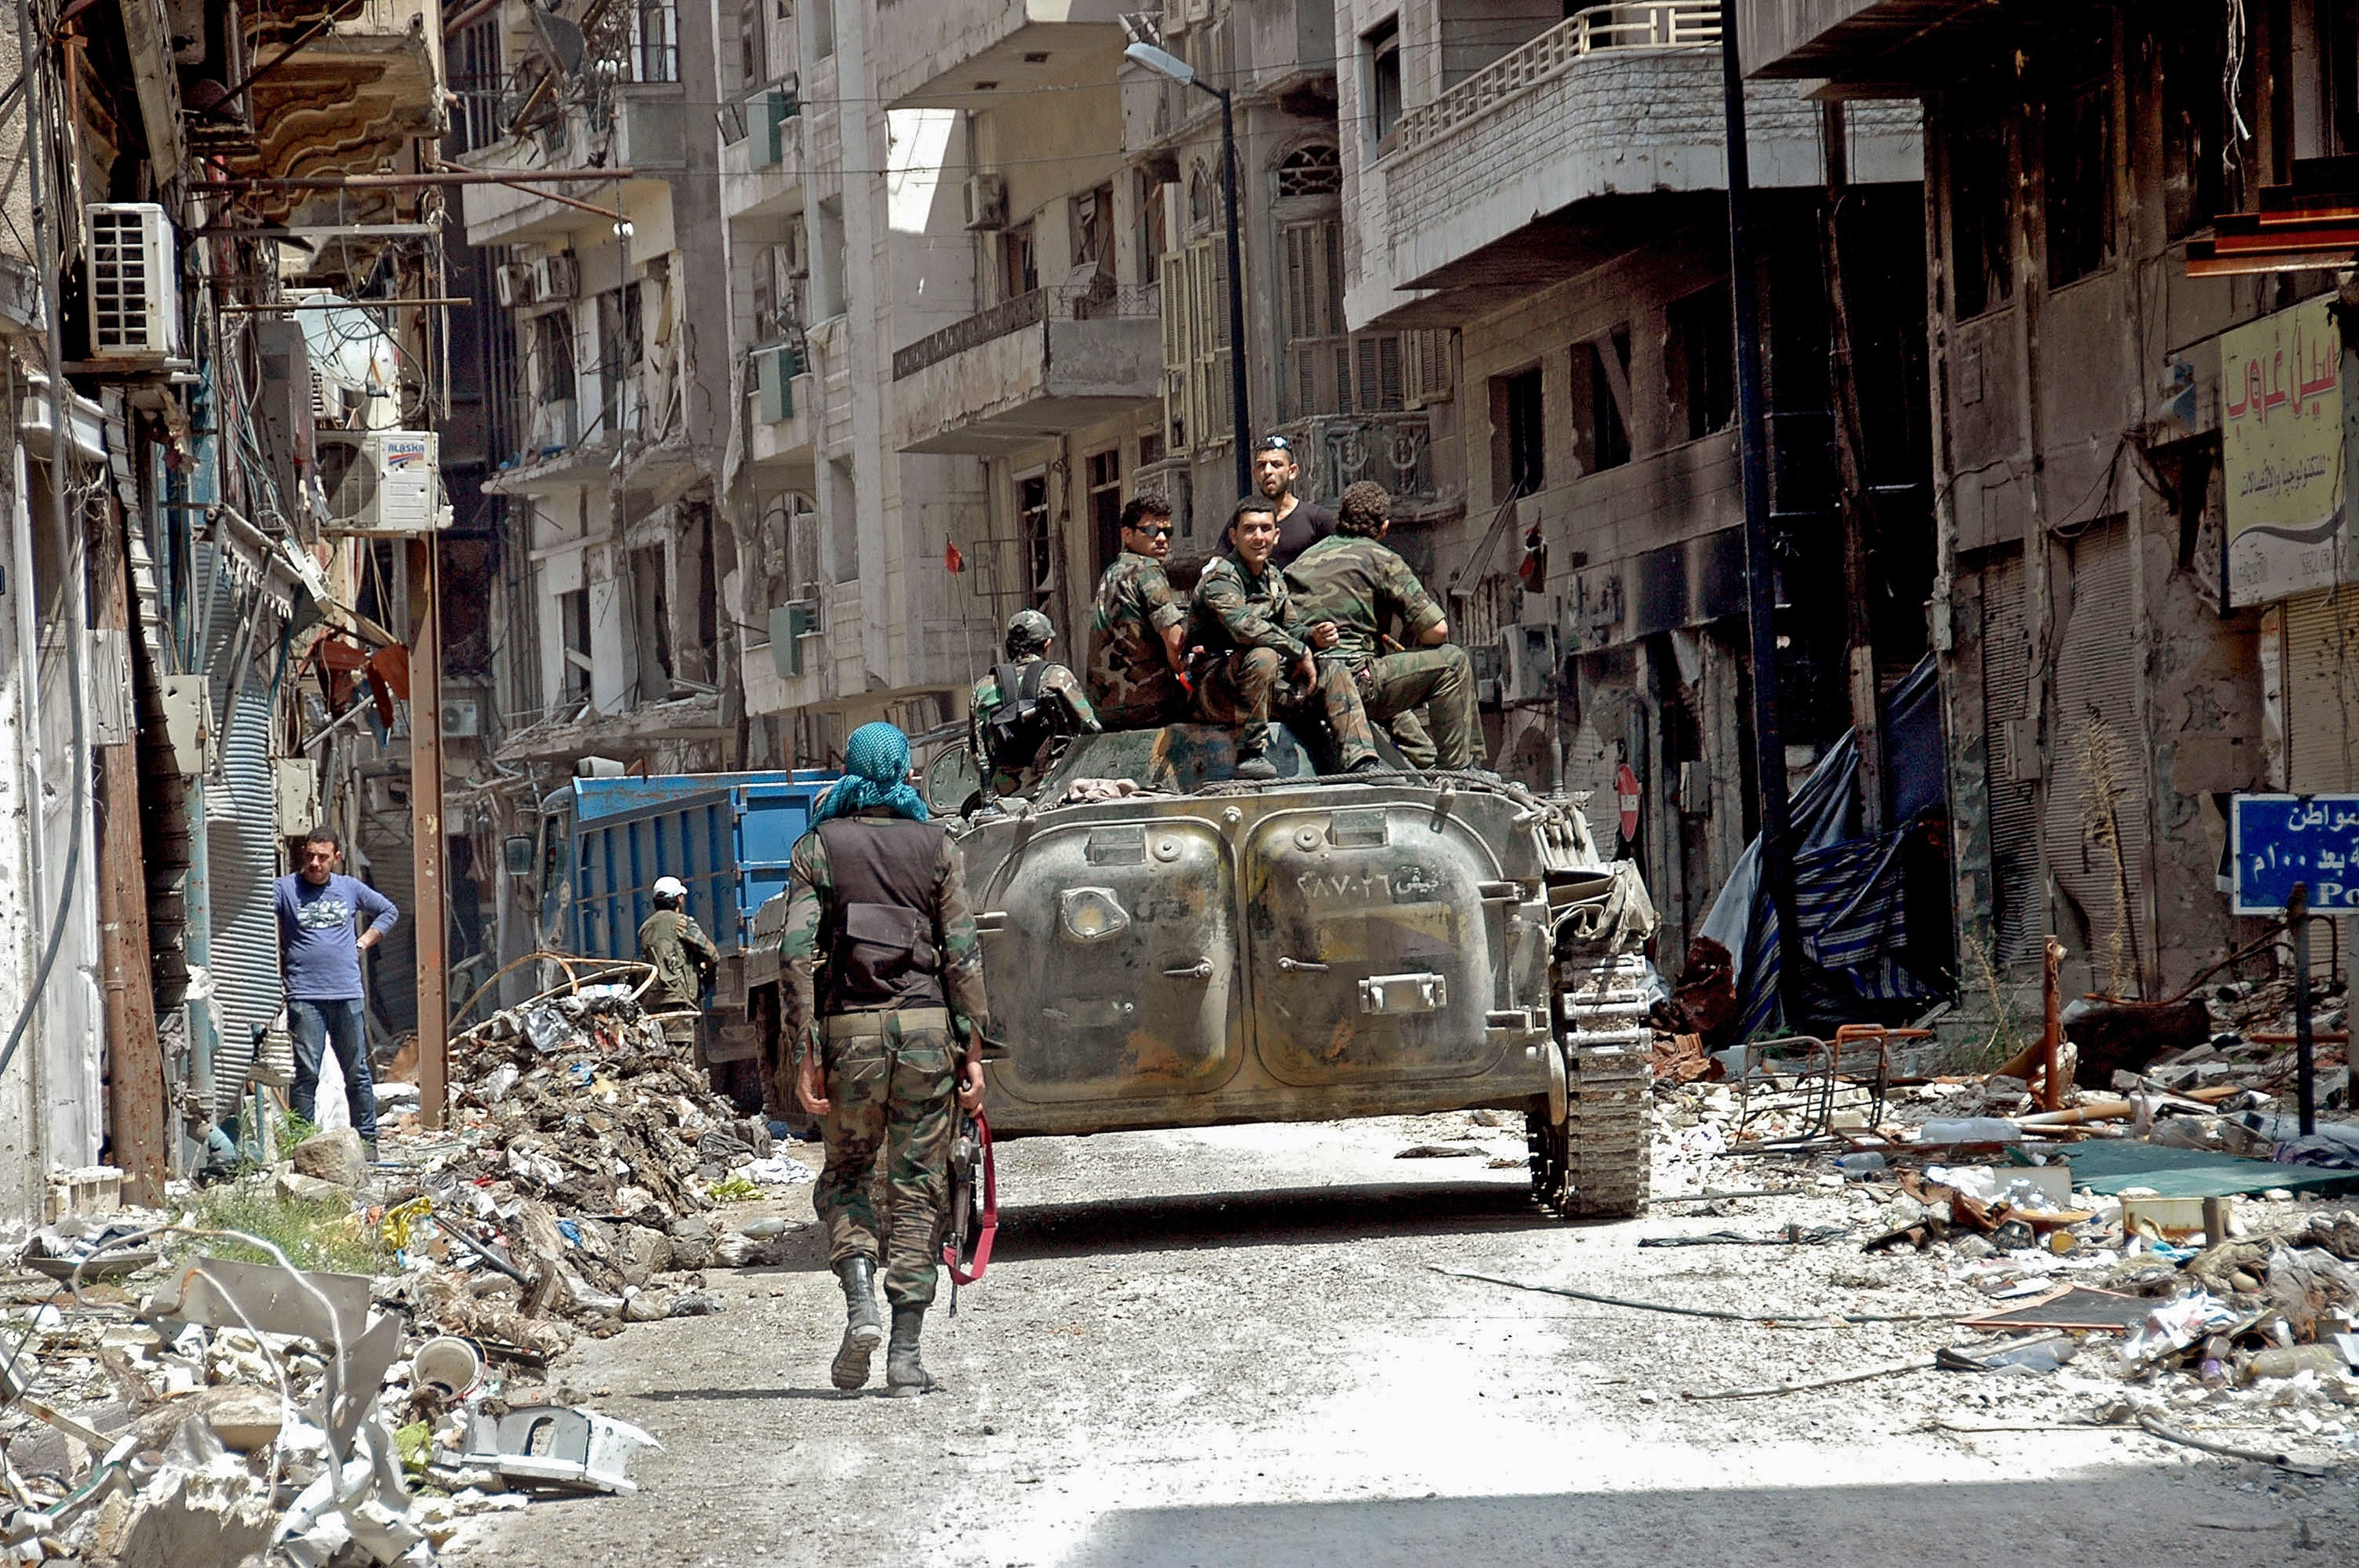 Syrian army sit on their armored vehicles while patrolling streets in Homs, Syria, May 9, 2014.